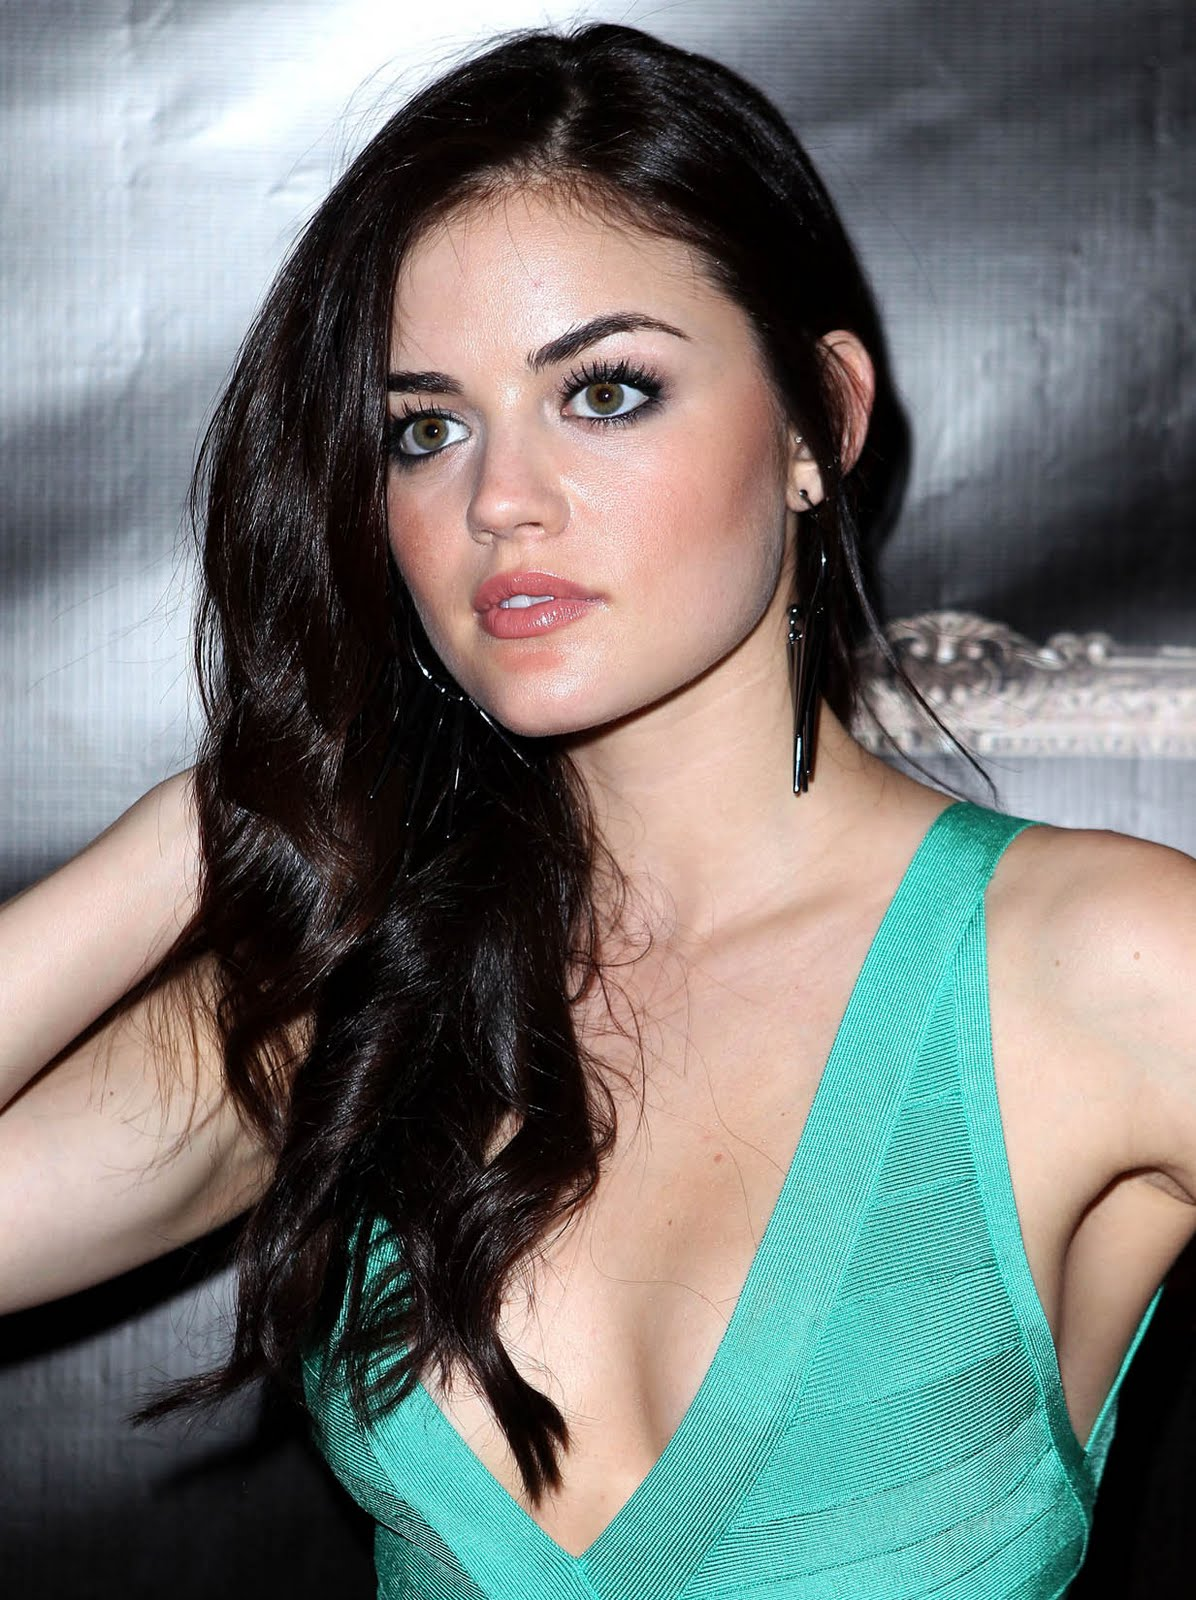 Lucy Hale - Planet HollywoodLucy Hale